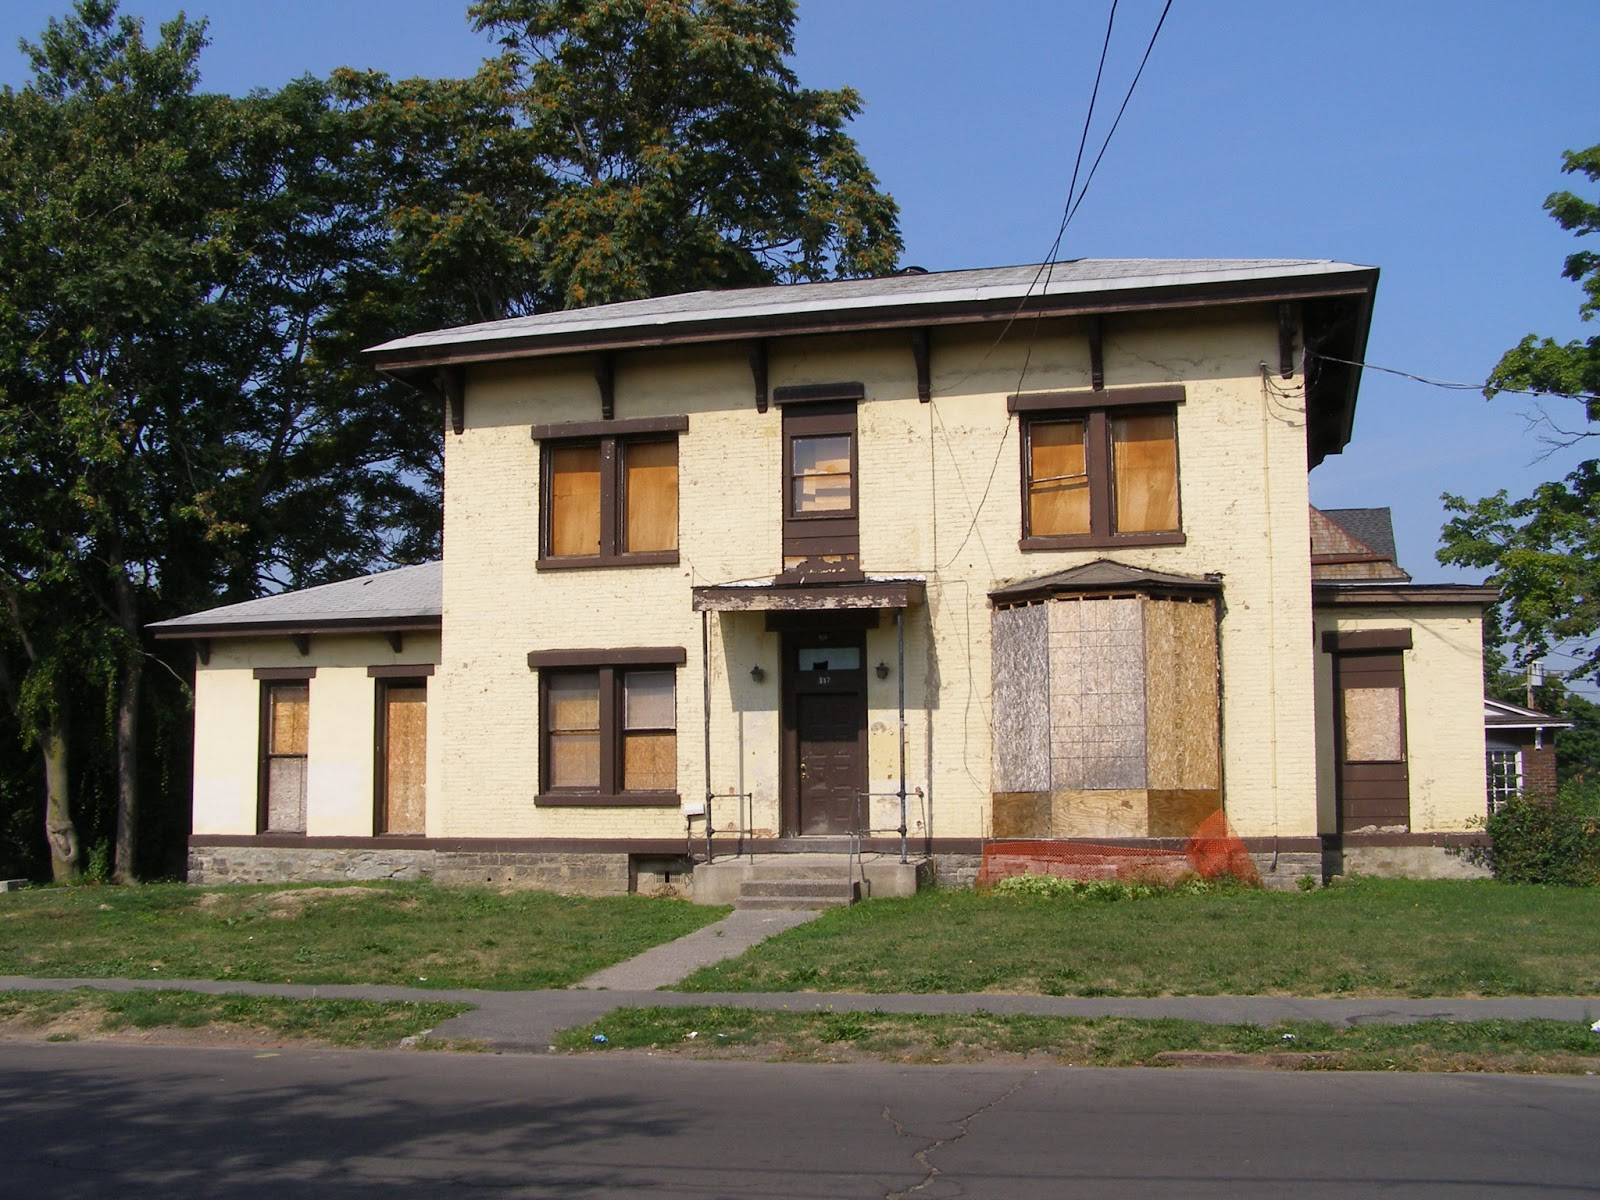 My Central New York The Avery Burton House Another Case